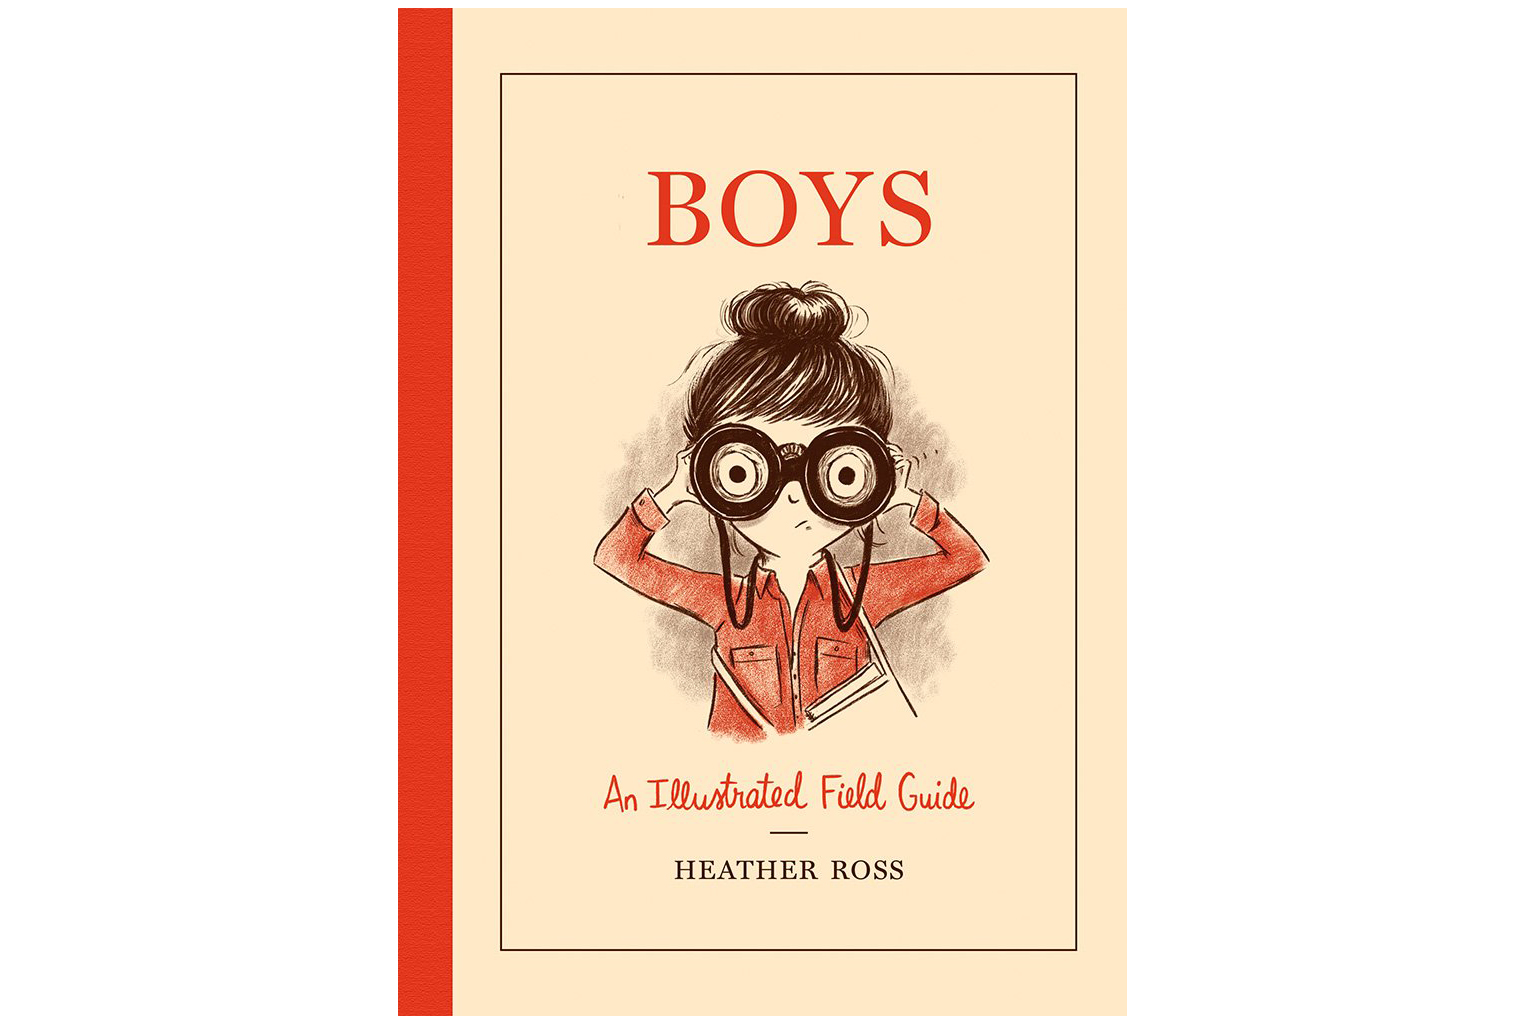 c2e23dd9de70 Boys: an Illustrated Field Guide, by Heather Ross